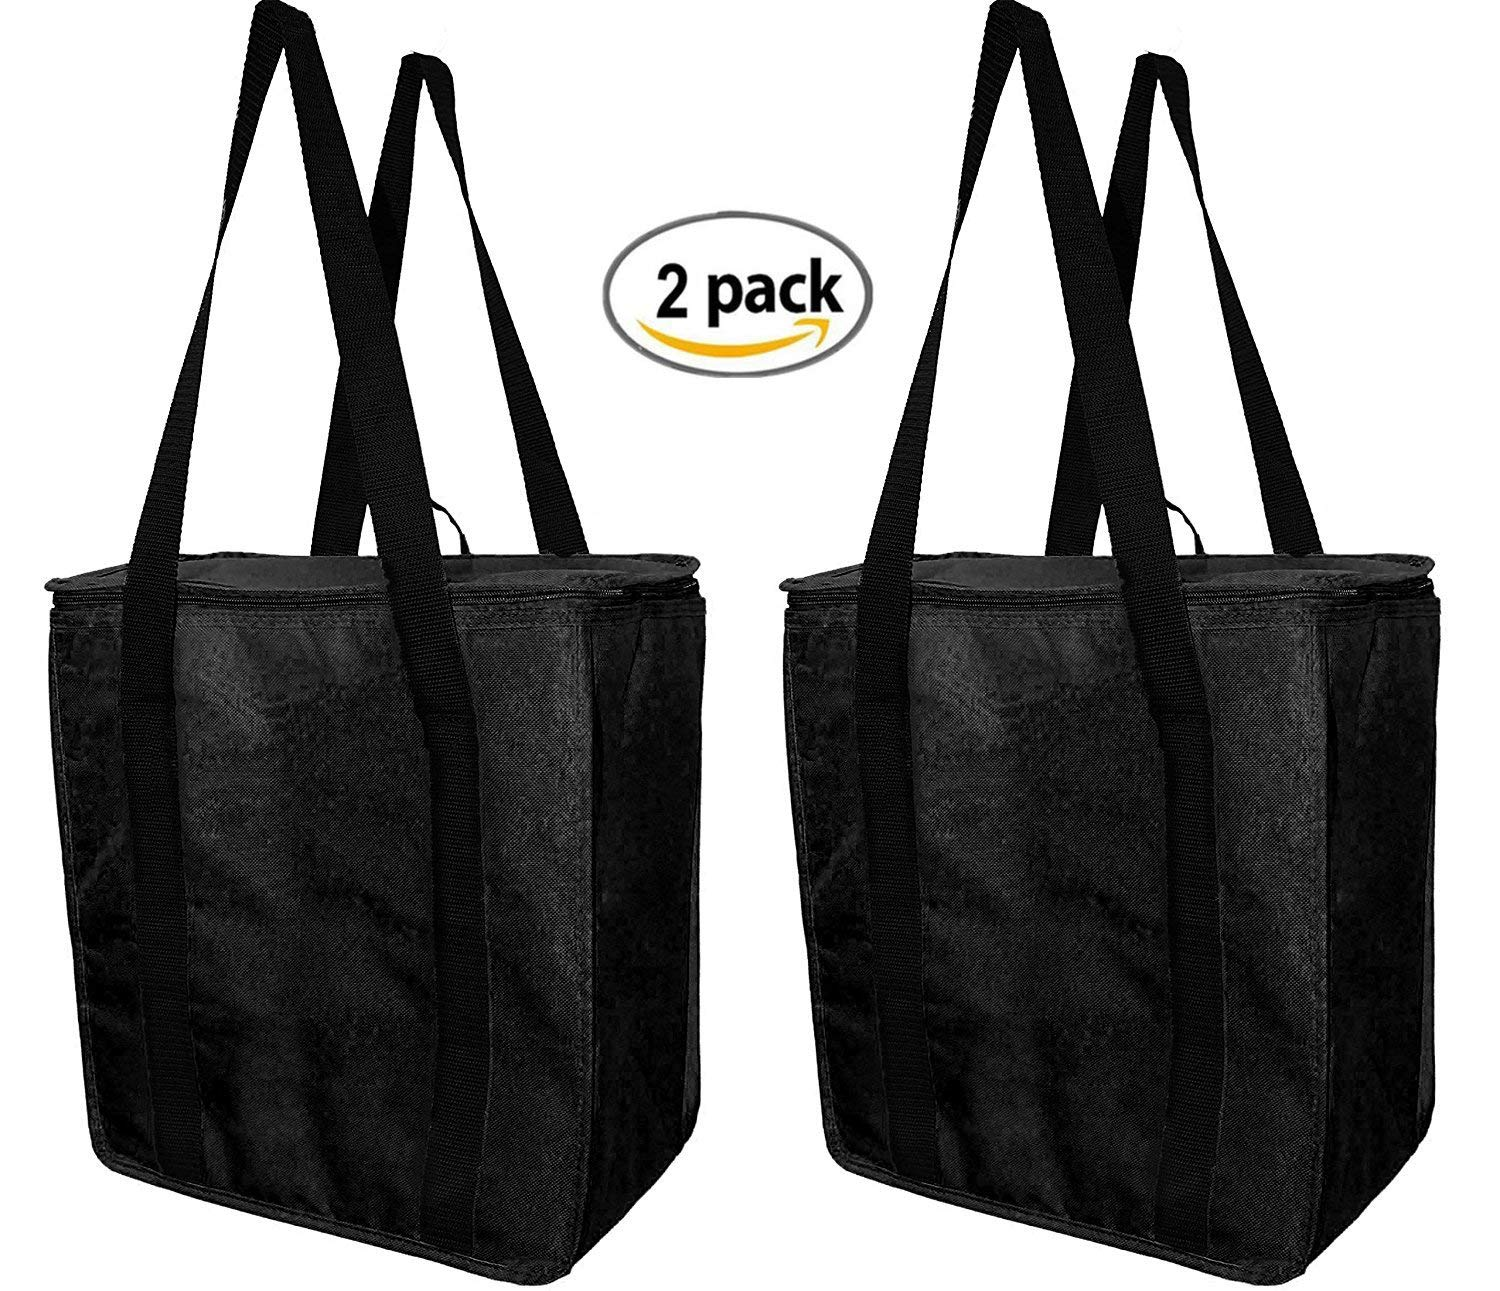 55ec9f644c5f Earthwise Reusable Insulated Grocery Bags Heavy Duty Nylon Thermal Cooler  Tote WATERPROOF In all Black w/ZIPPER Closure KEEPS FOOD HOT OR COLD (2 ...